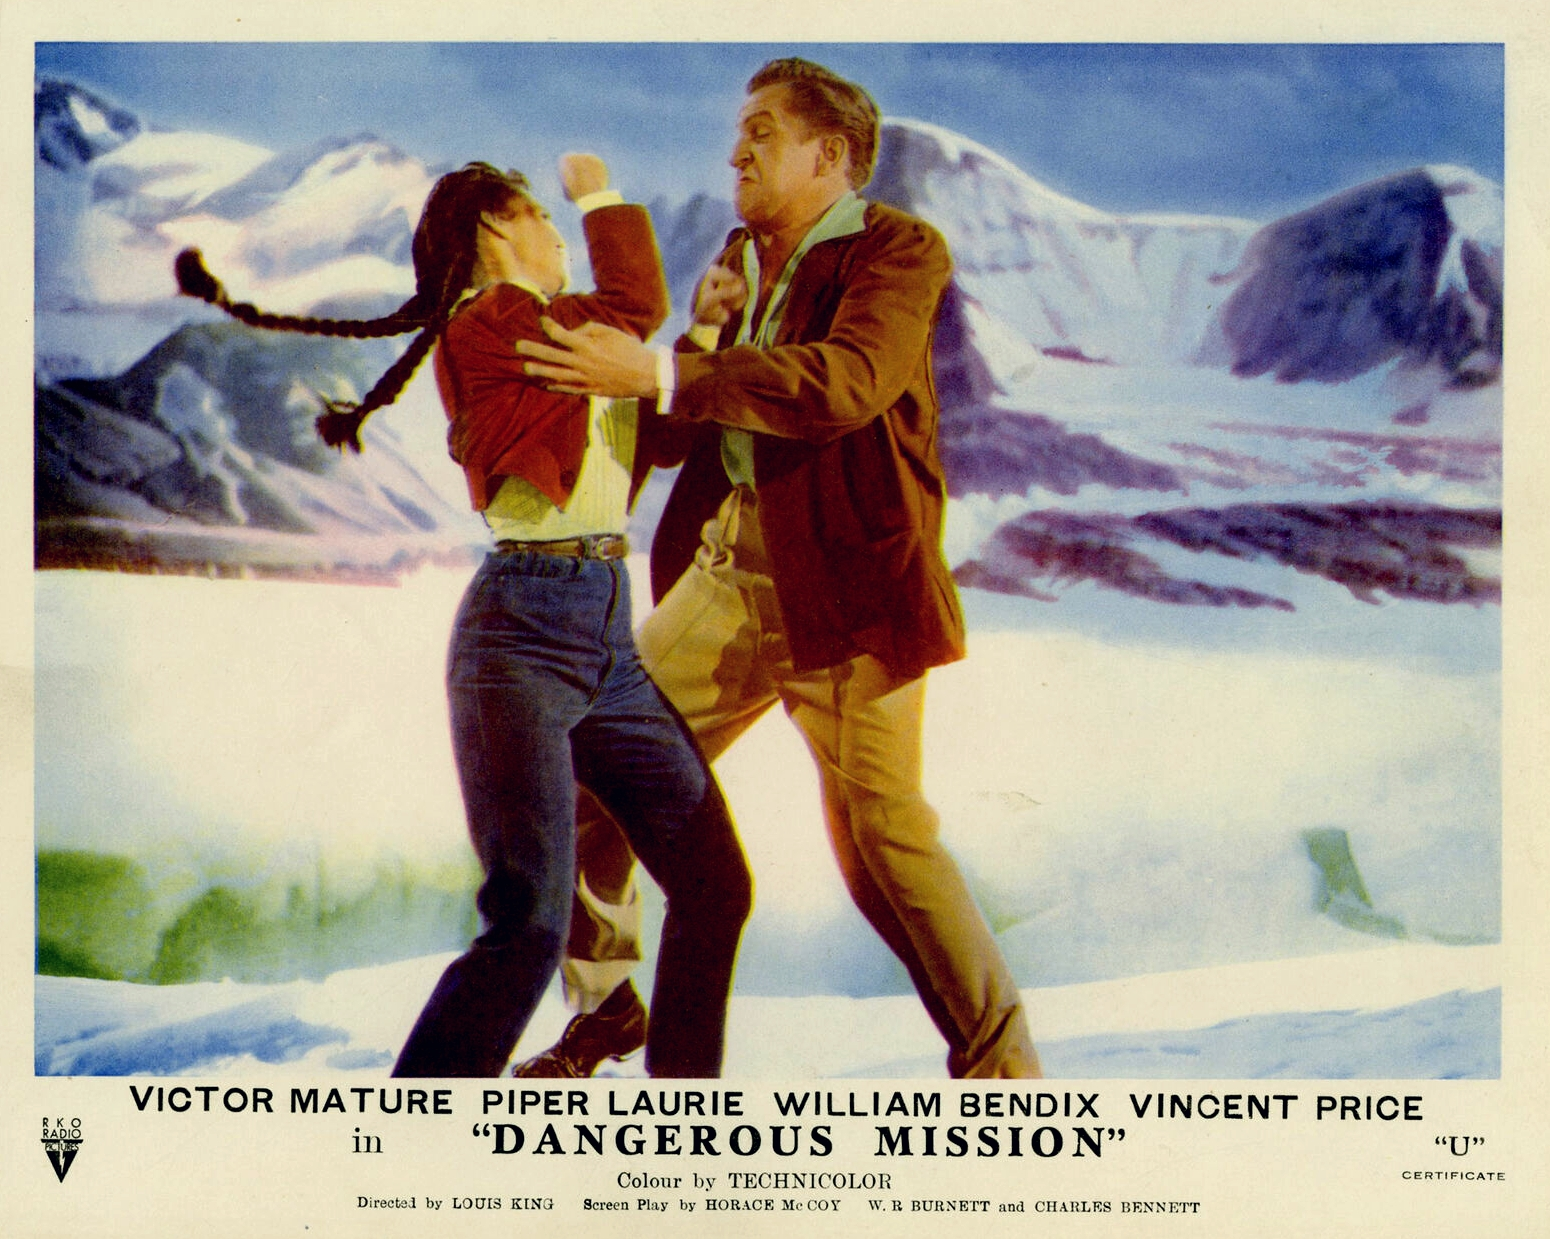 Piper Laurie, Vincent Price, and Betta St. John in Dangerous Mission (1954)